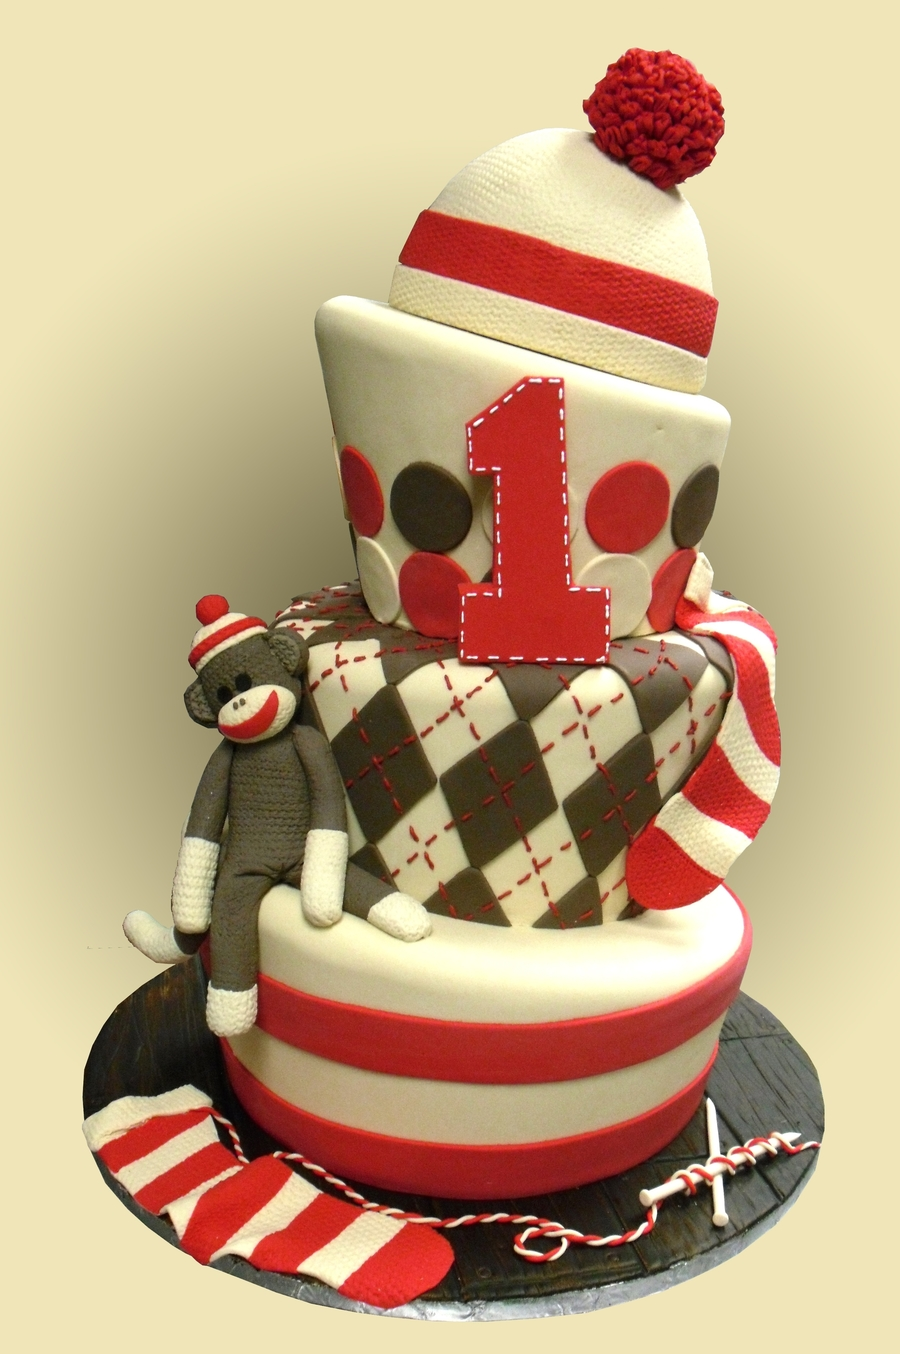 Sock Monkey Cake By The London Baker on Cake Central